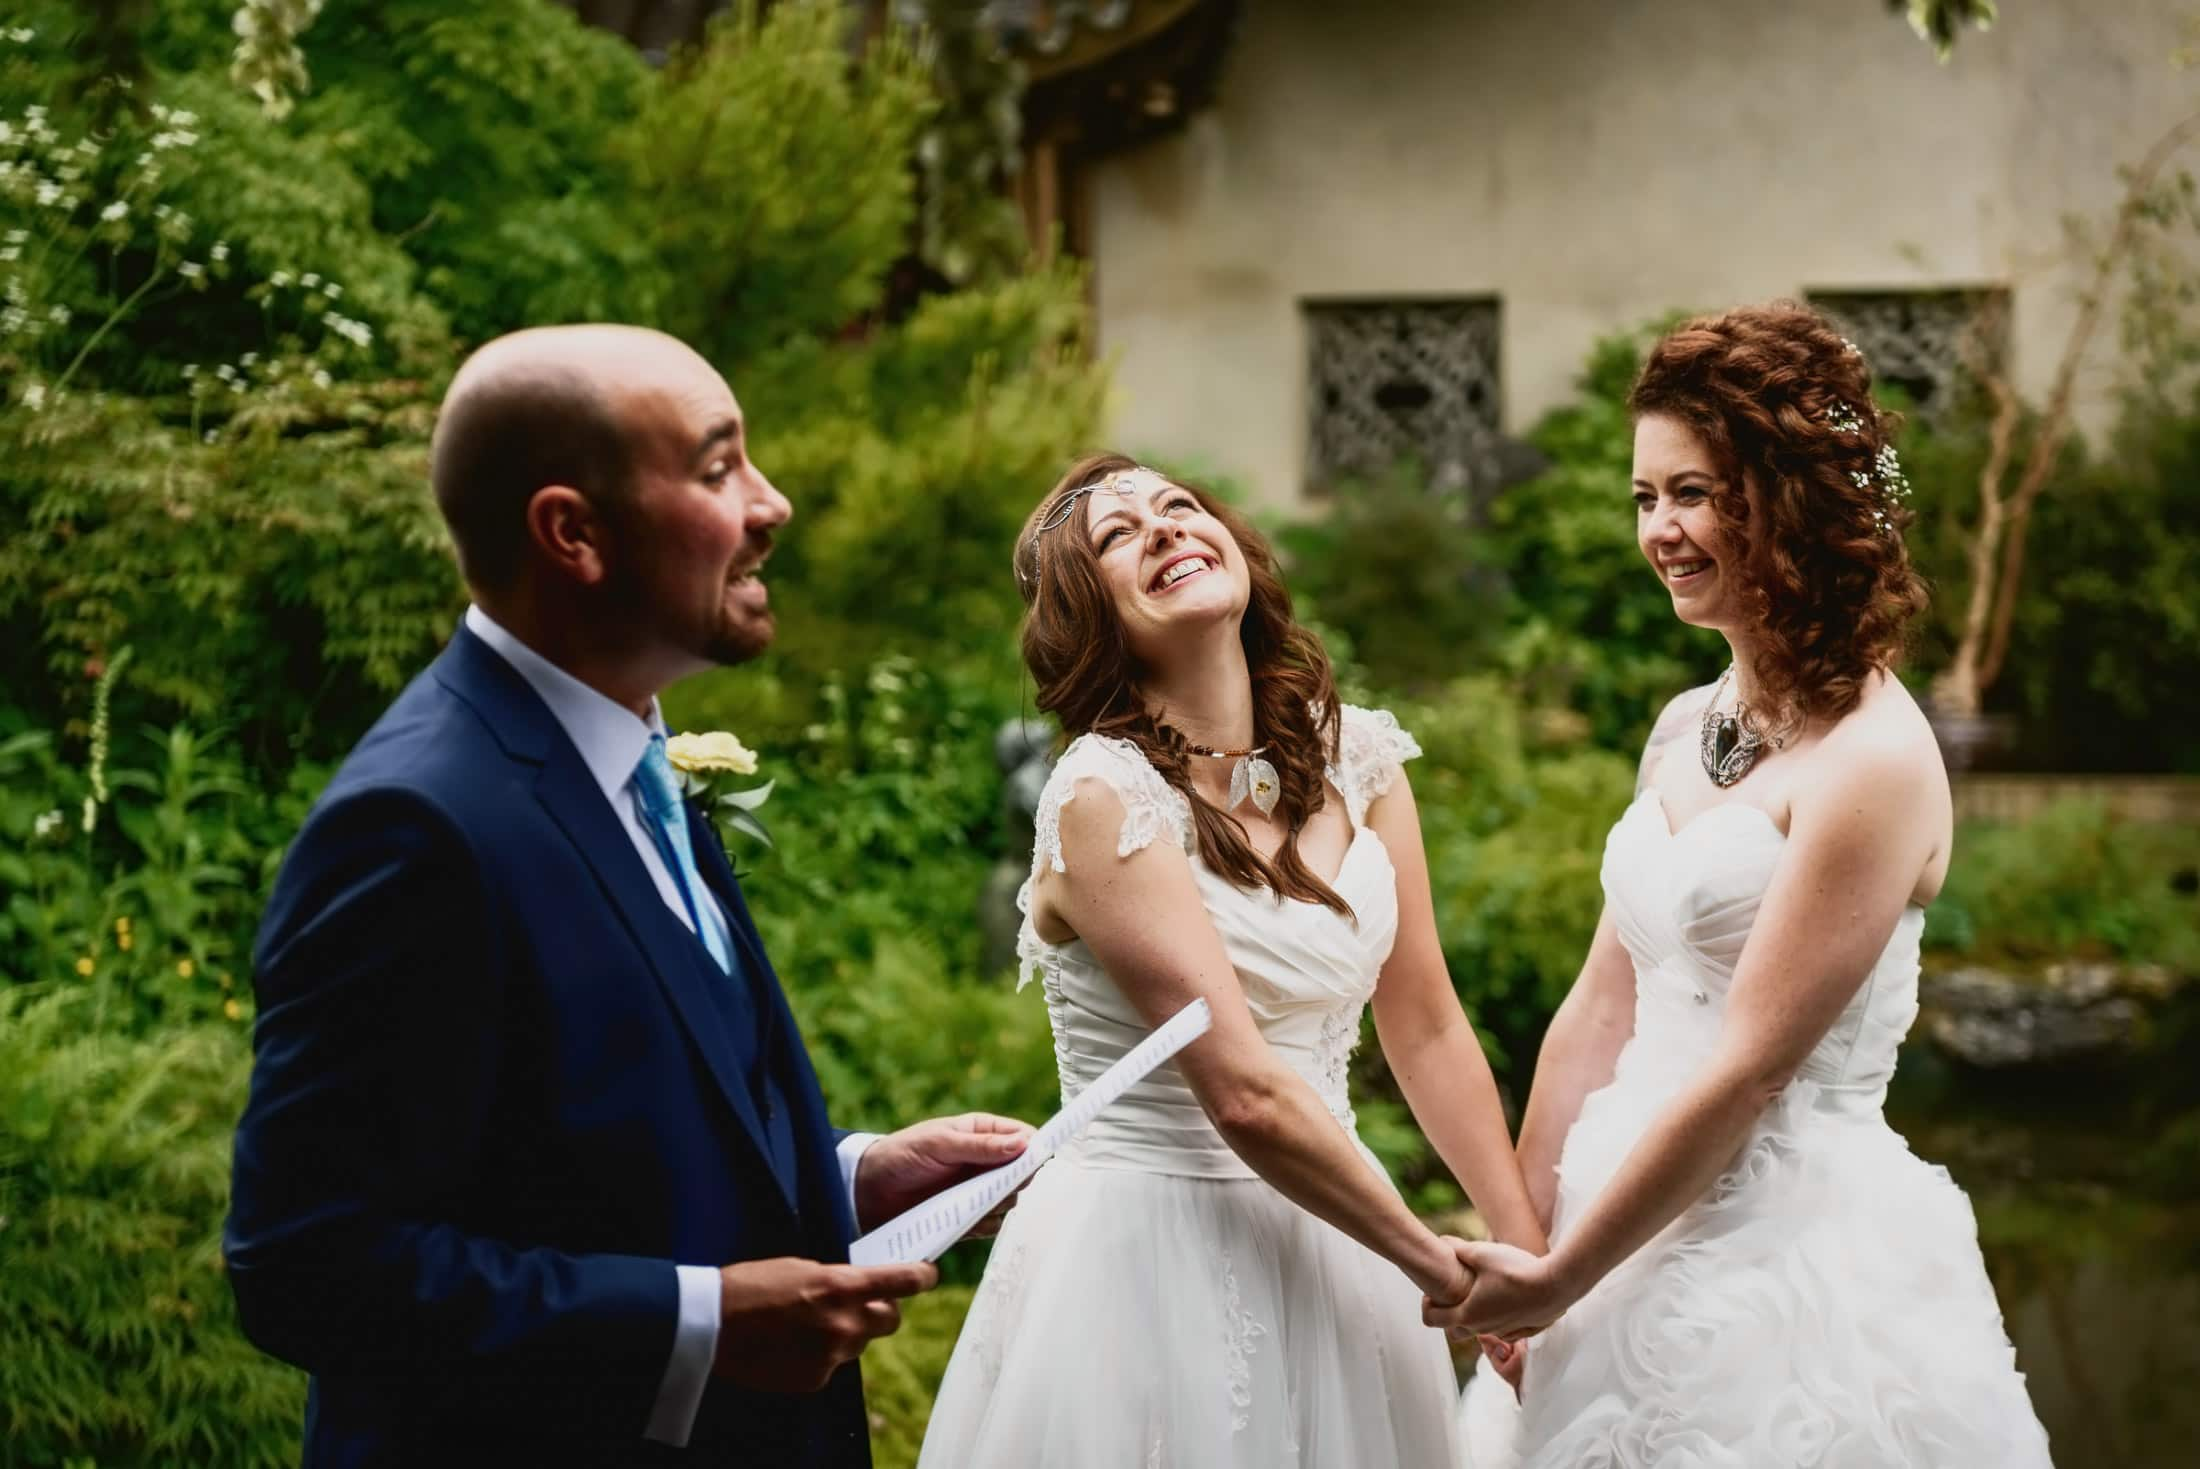 Two brides emotional during wedding ceremony